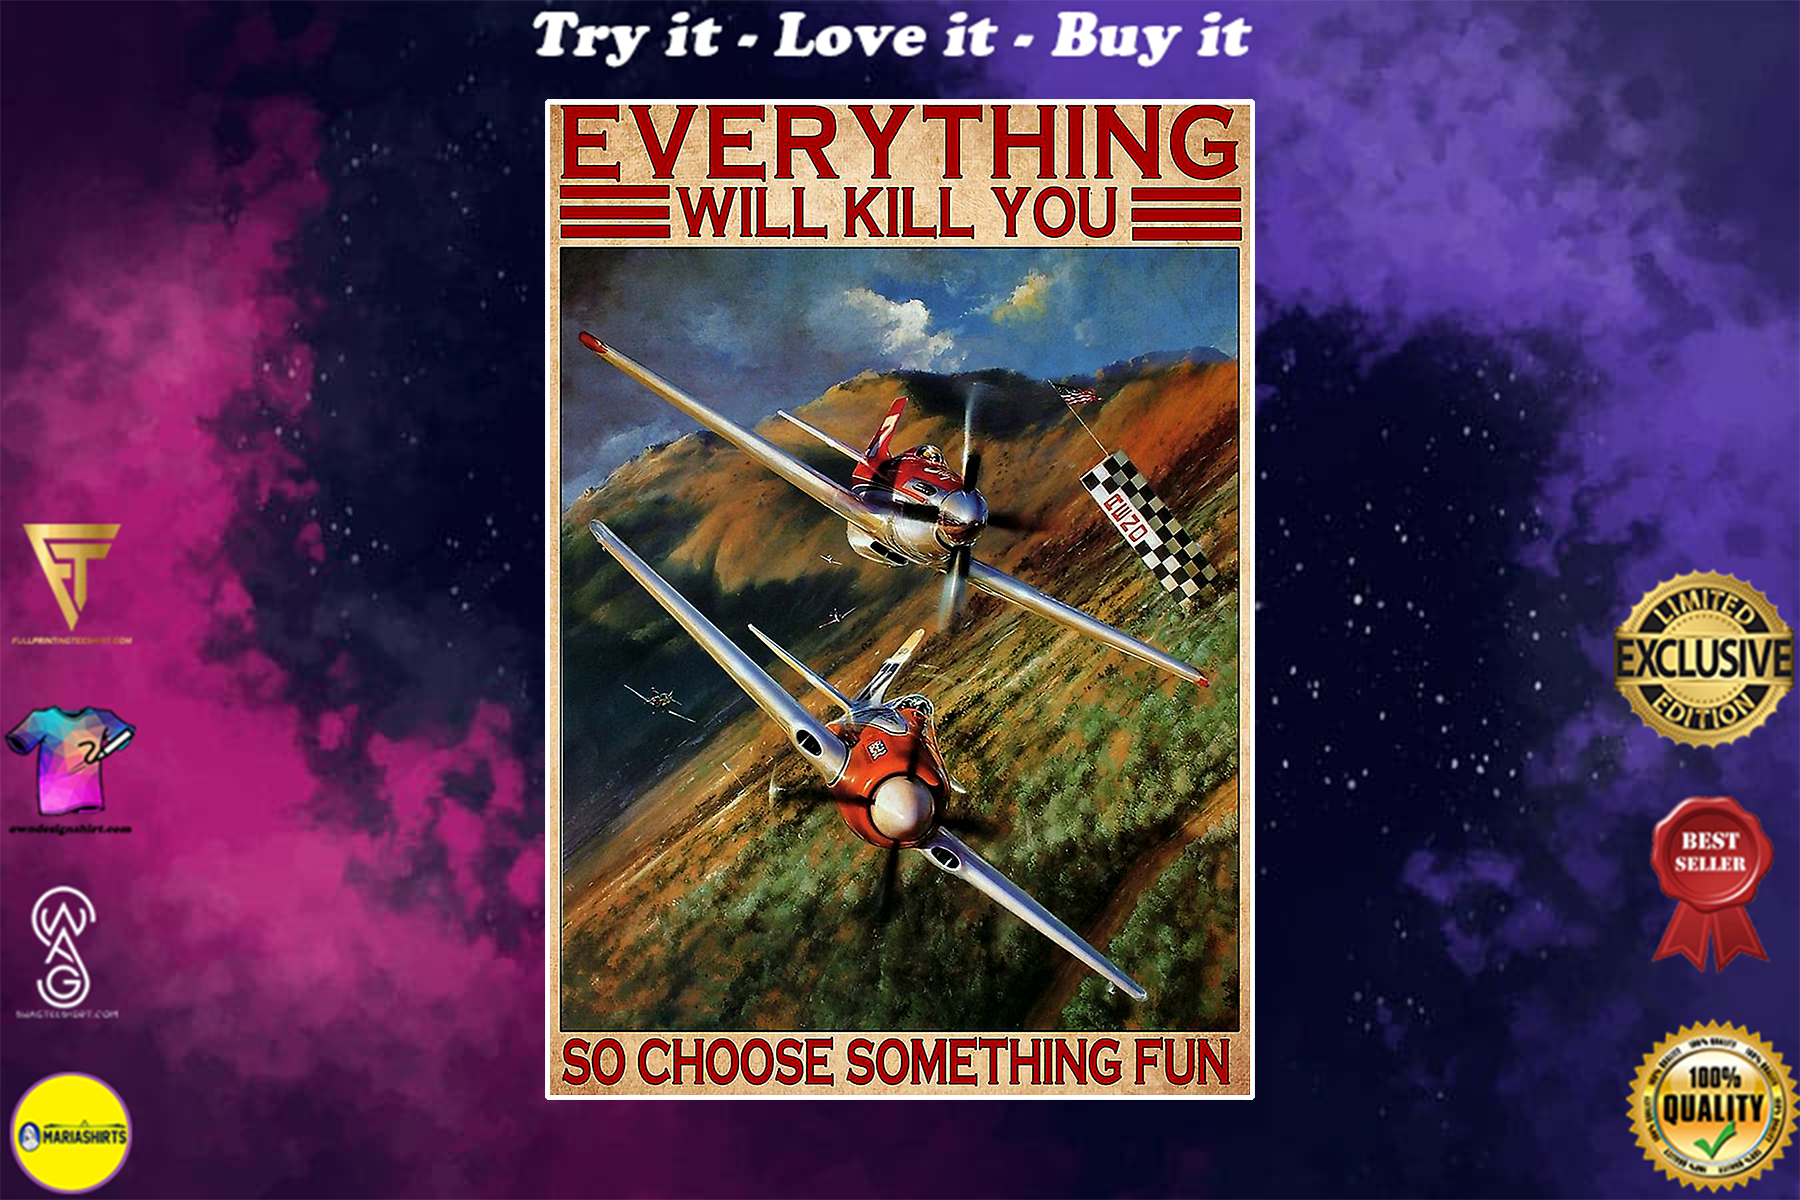 everything will kill you so choose something fun air race vintage poster